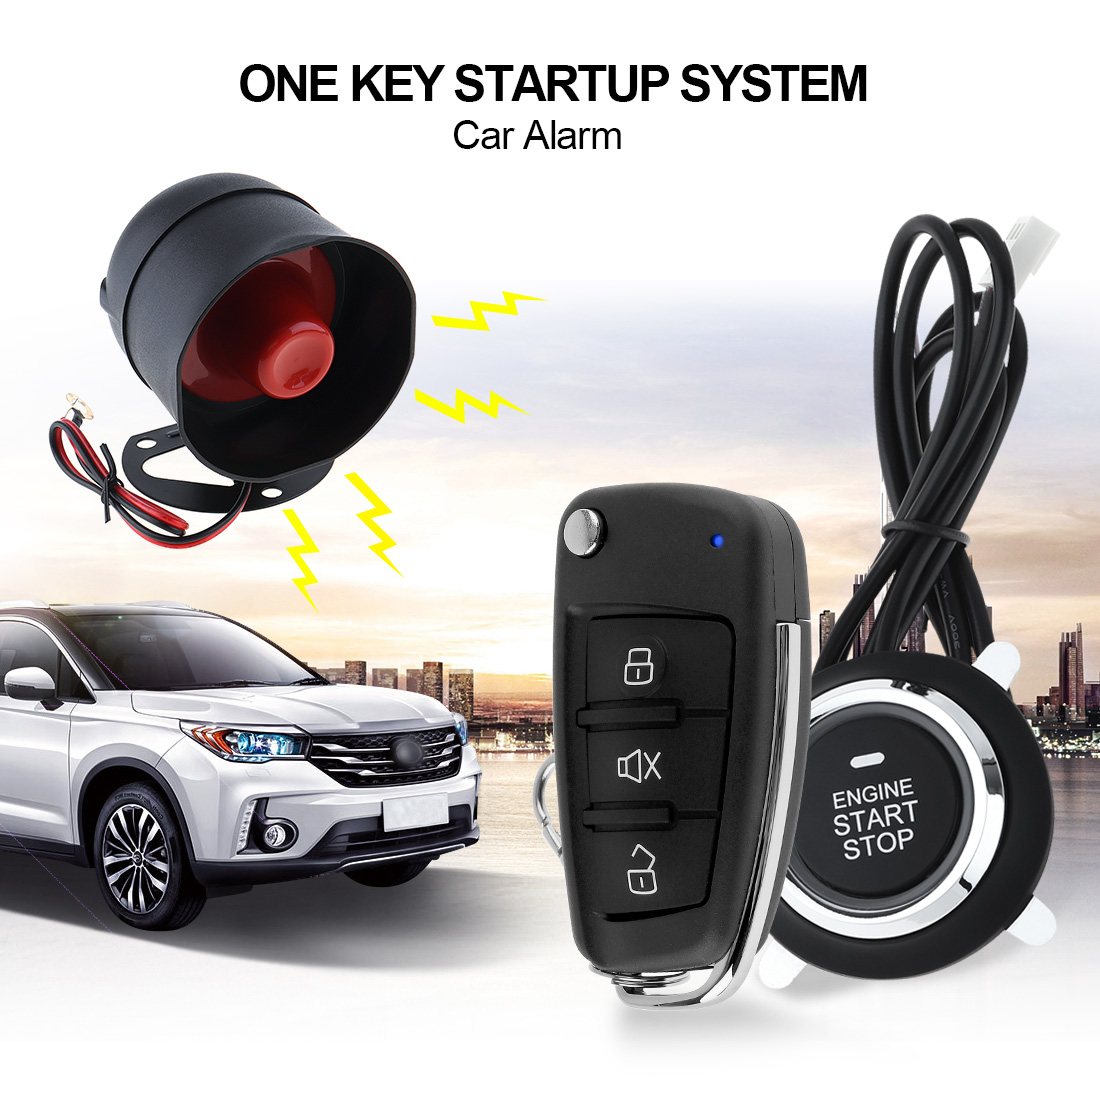 Universal Car Alarm Smart Remote System Start Stop Engine System With Auto Central Lock And Keyless Entry High Quality